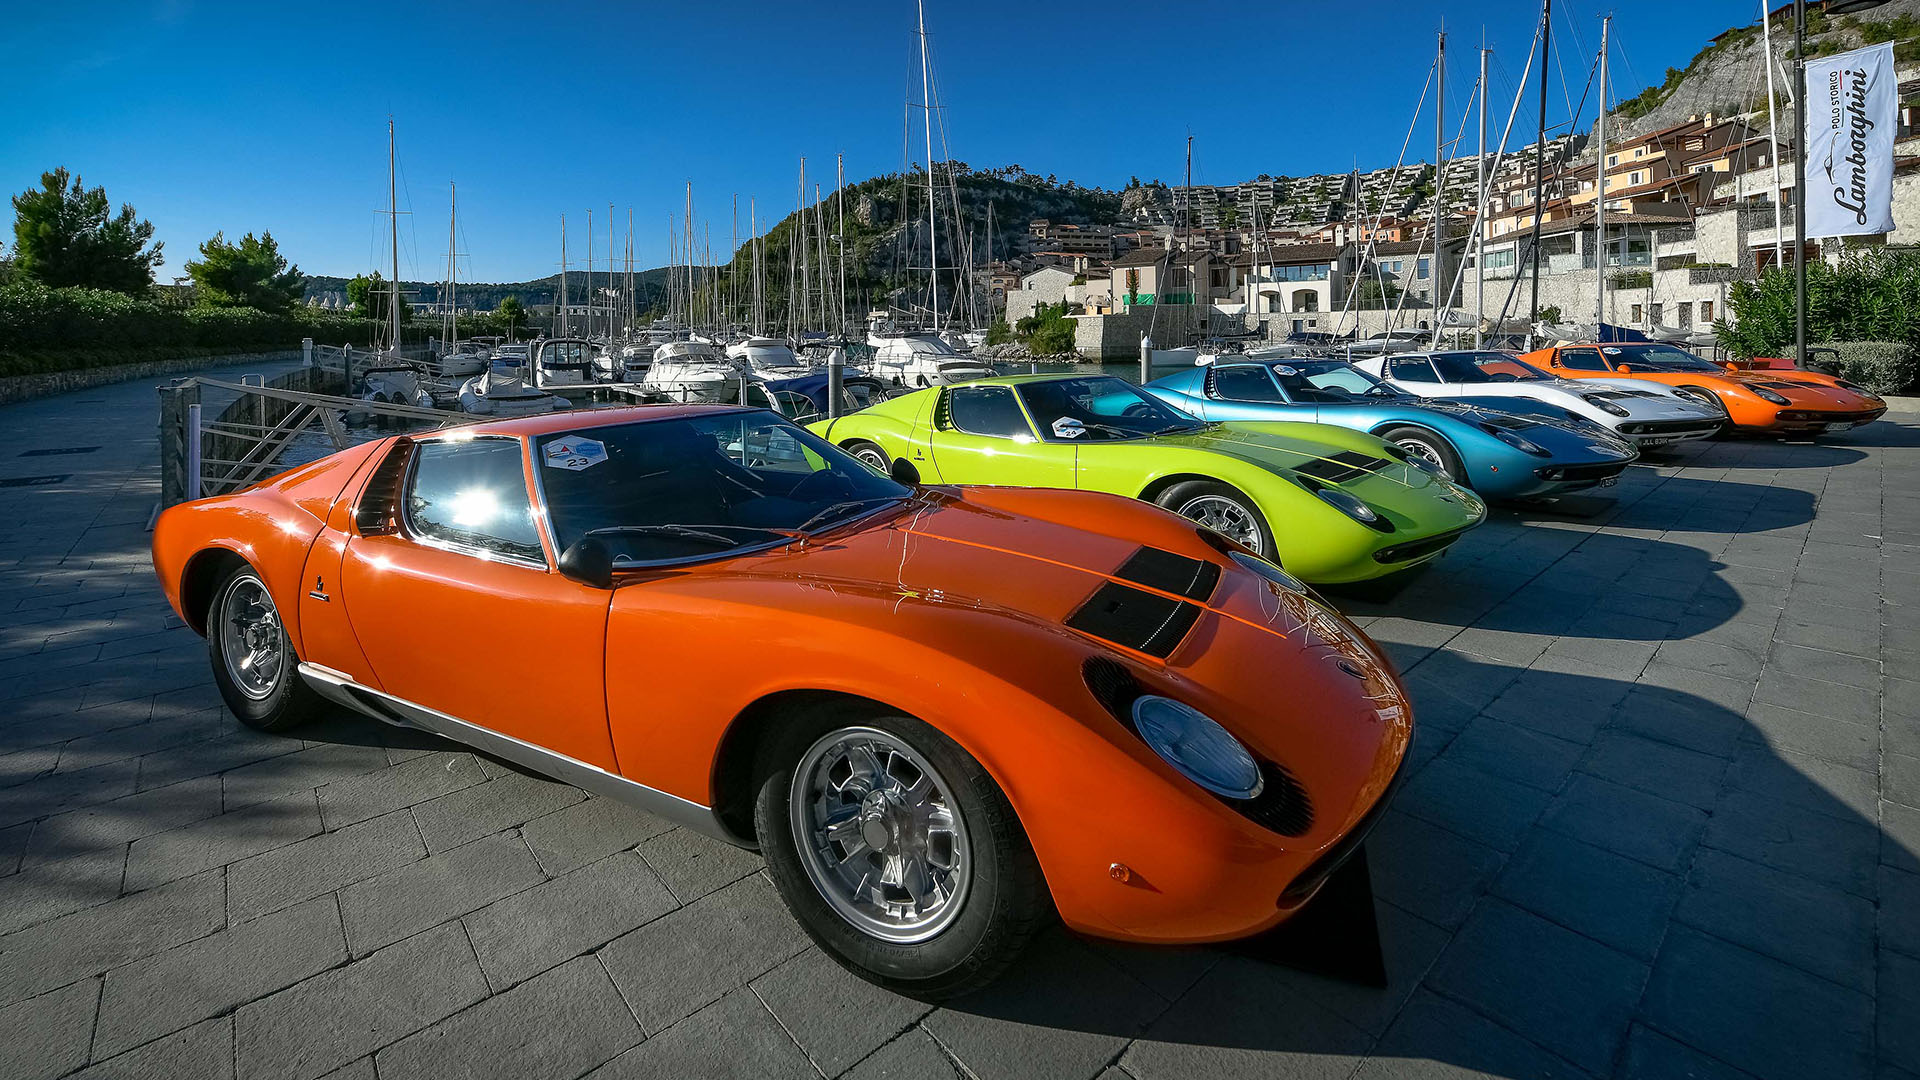 Ferrari 365 GTB parked with other supercars